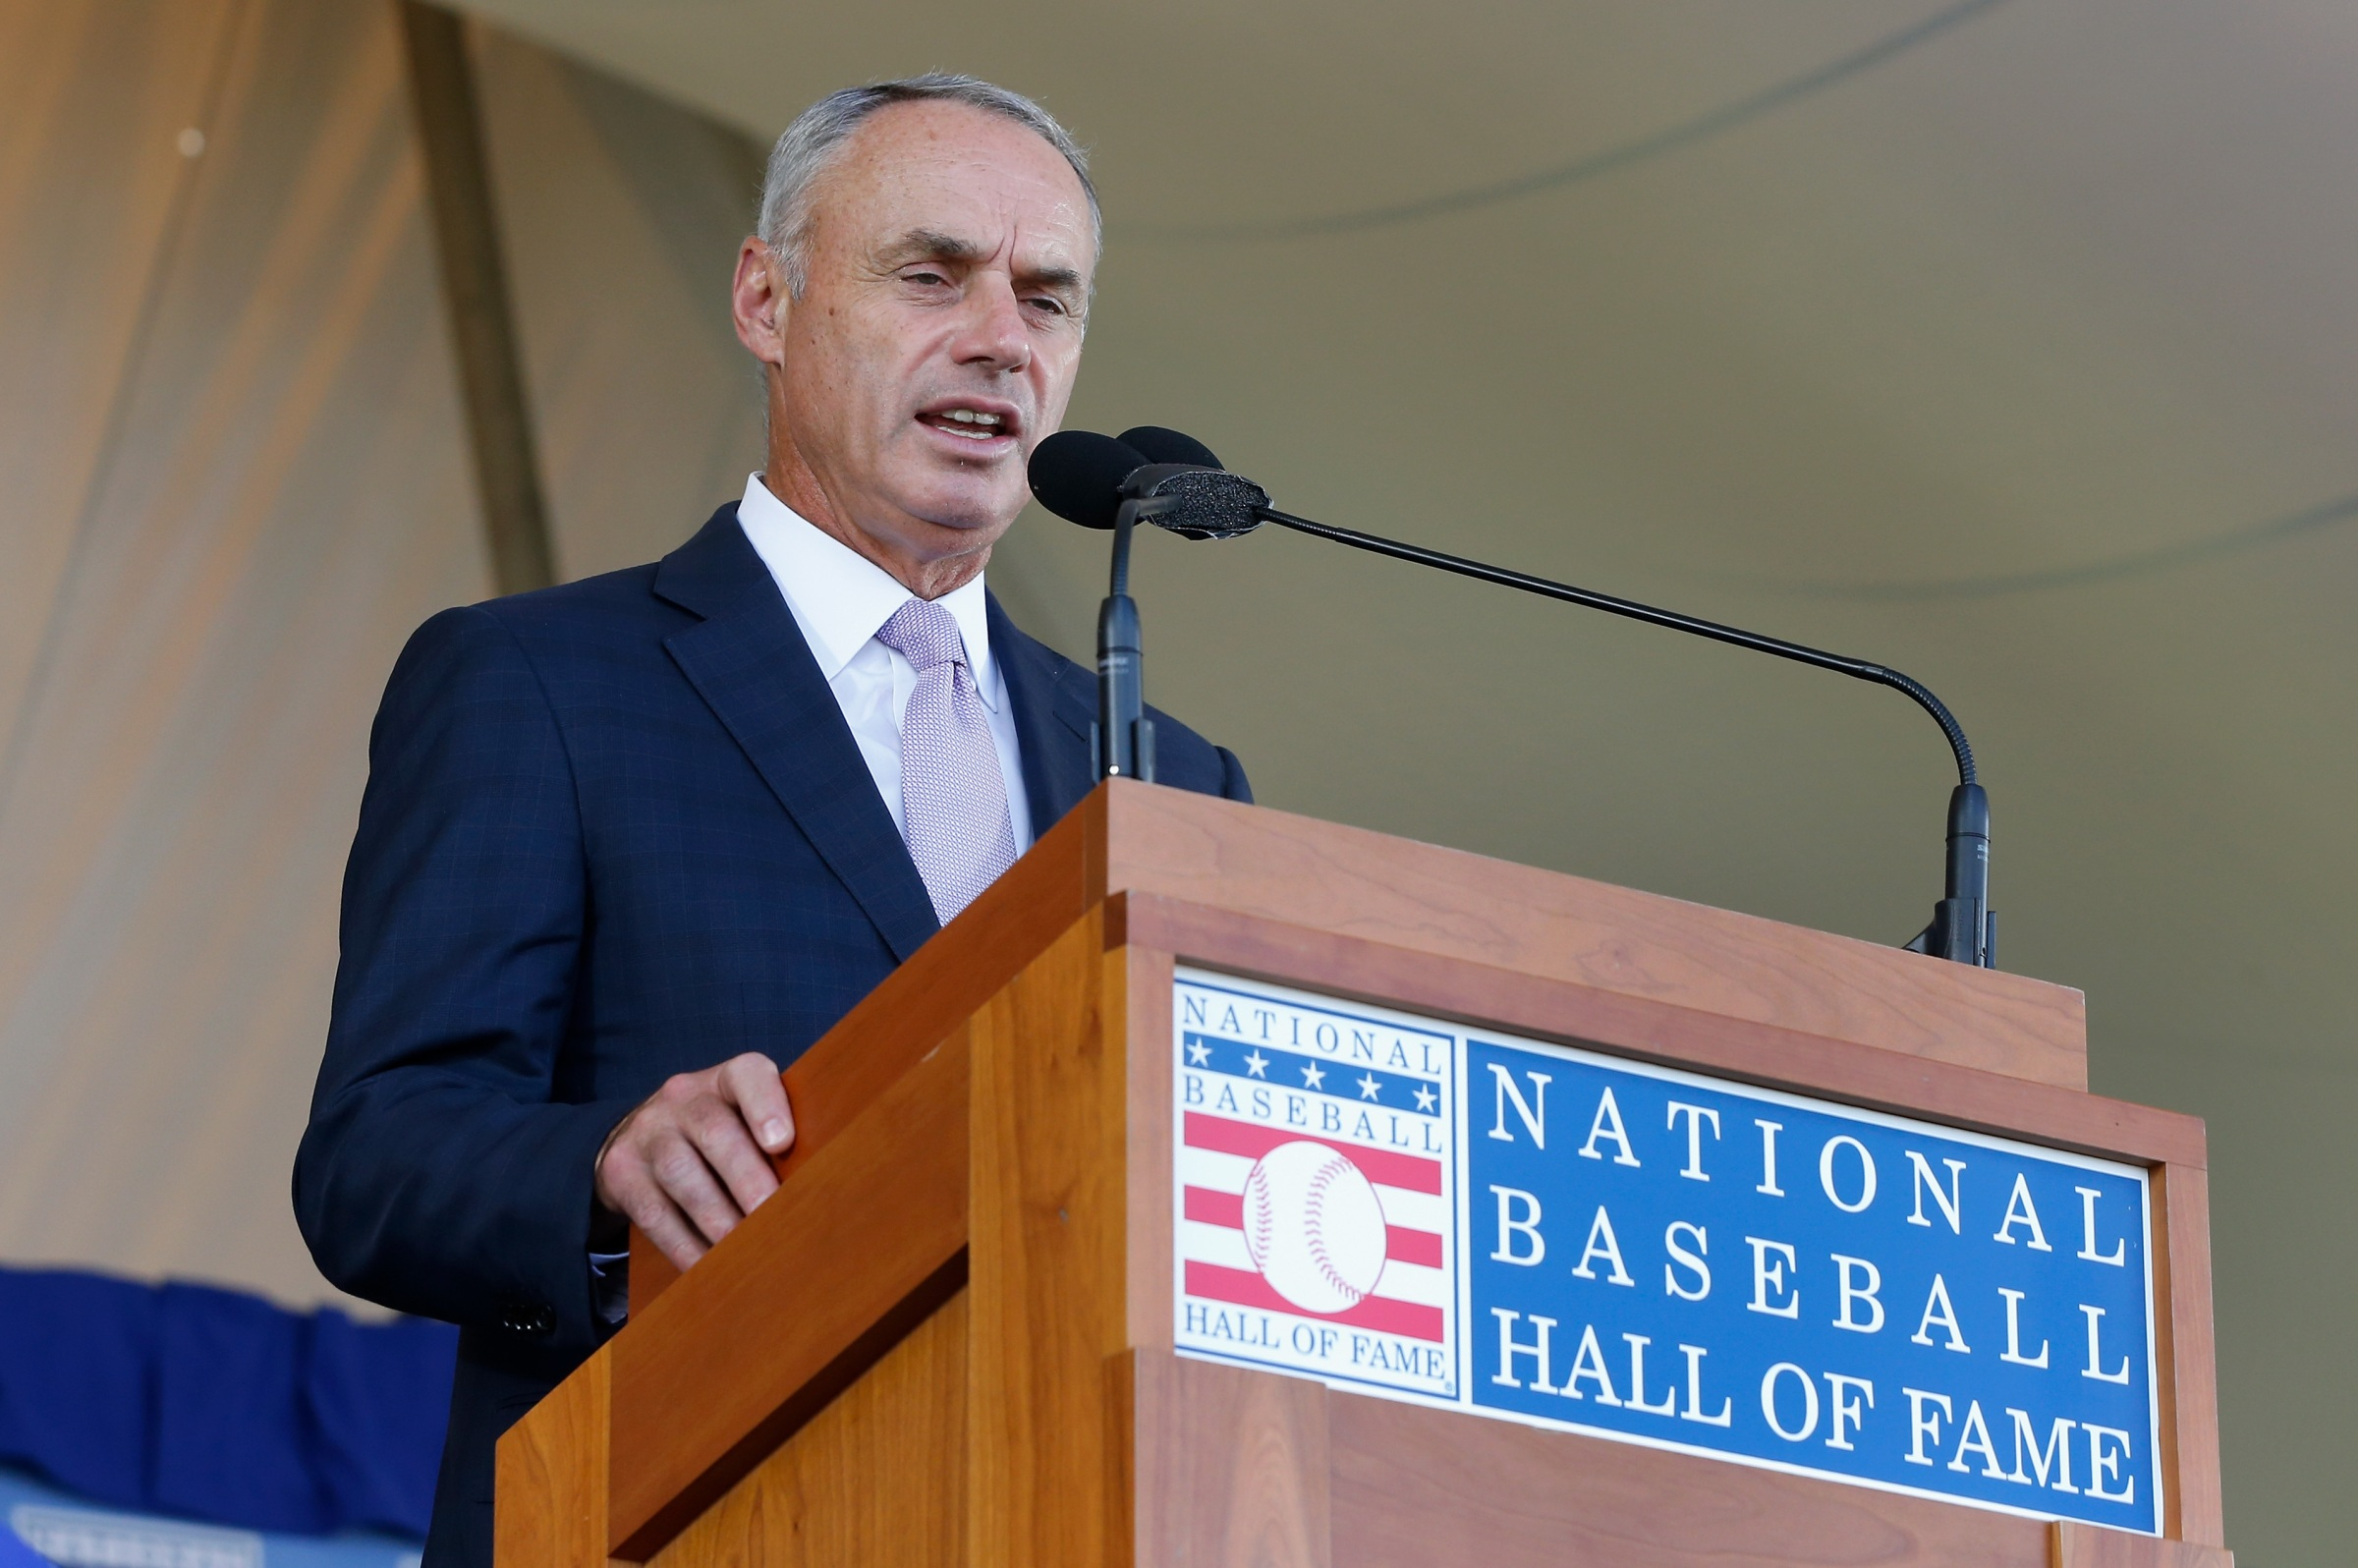 MLB Commissioner Rob Manfred, seen here in Cooperstown, being weird.